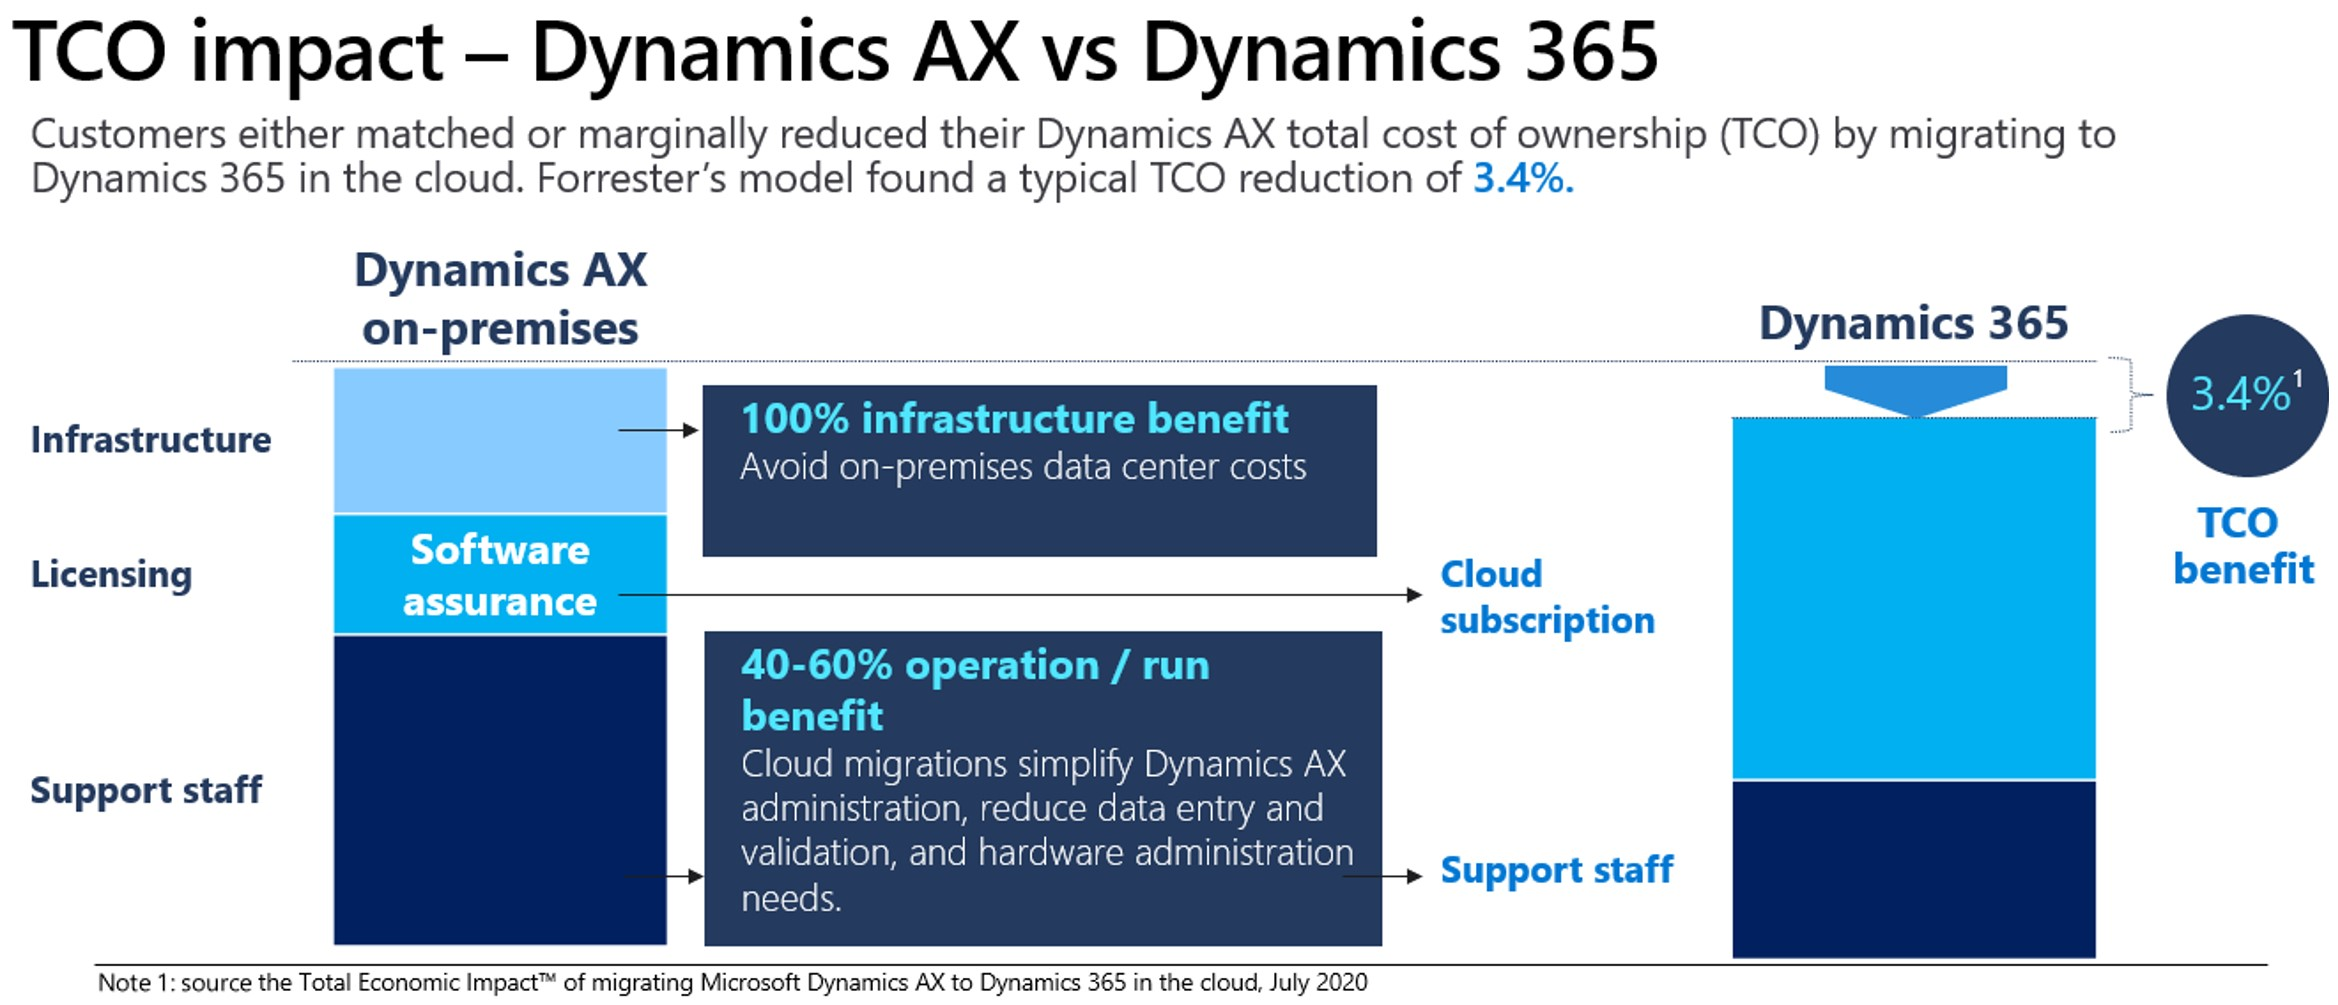 graphic portraying the total cost of ownership decrease of 3.4% when migrating from Dynamics AX to Dynamics 365 in the Cloud